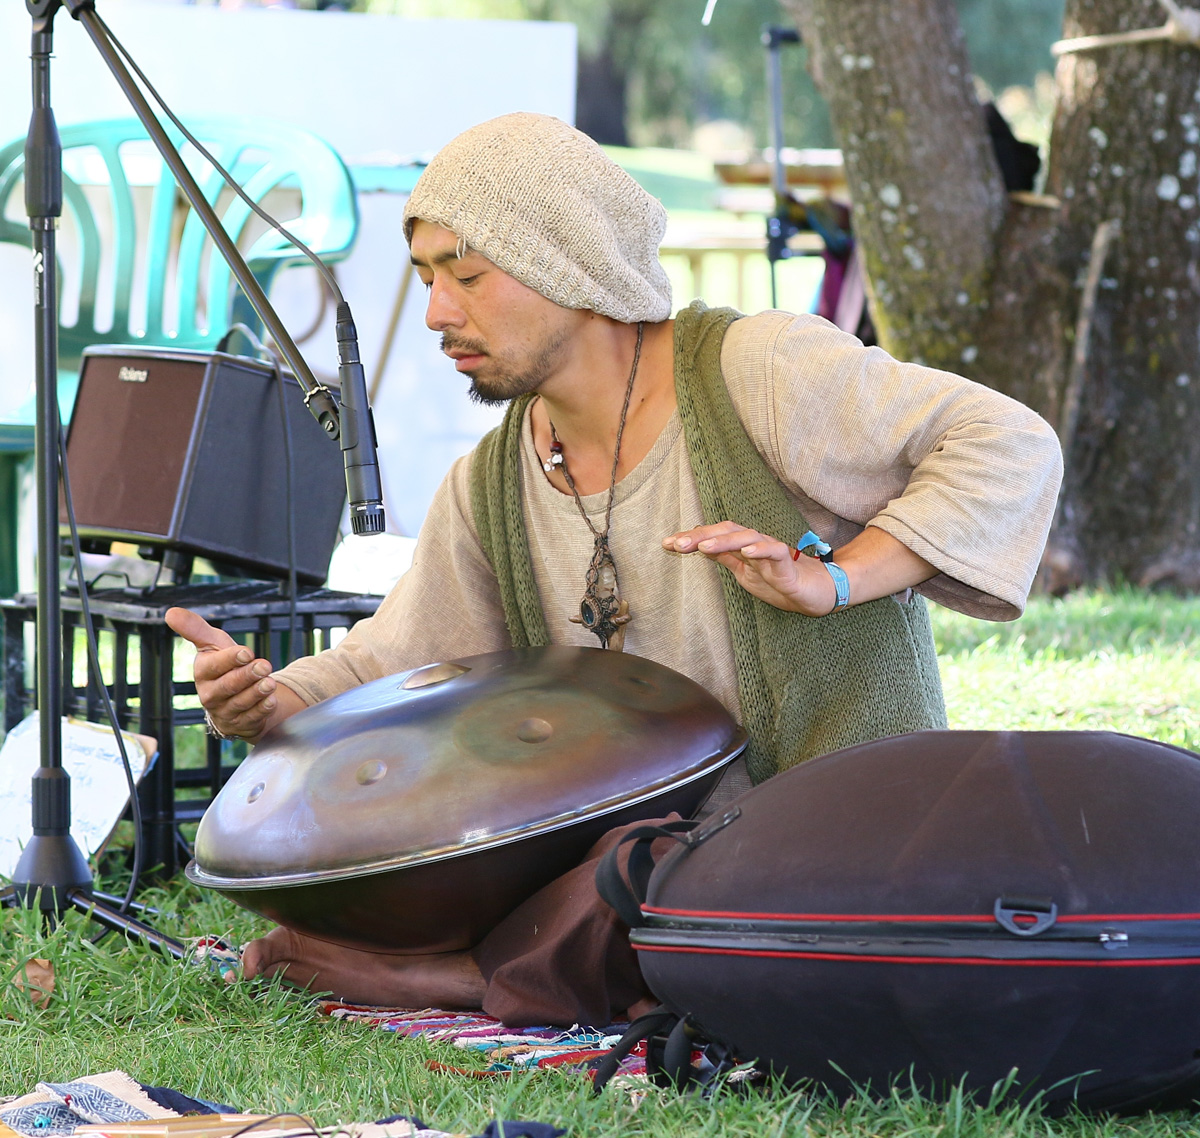 Taka from Japn playing a handpan came from Hong Kong to join in Stringfest